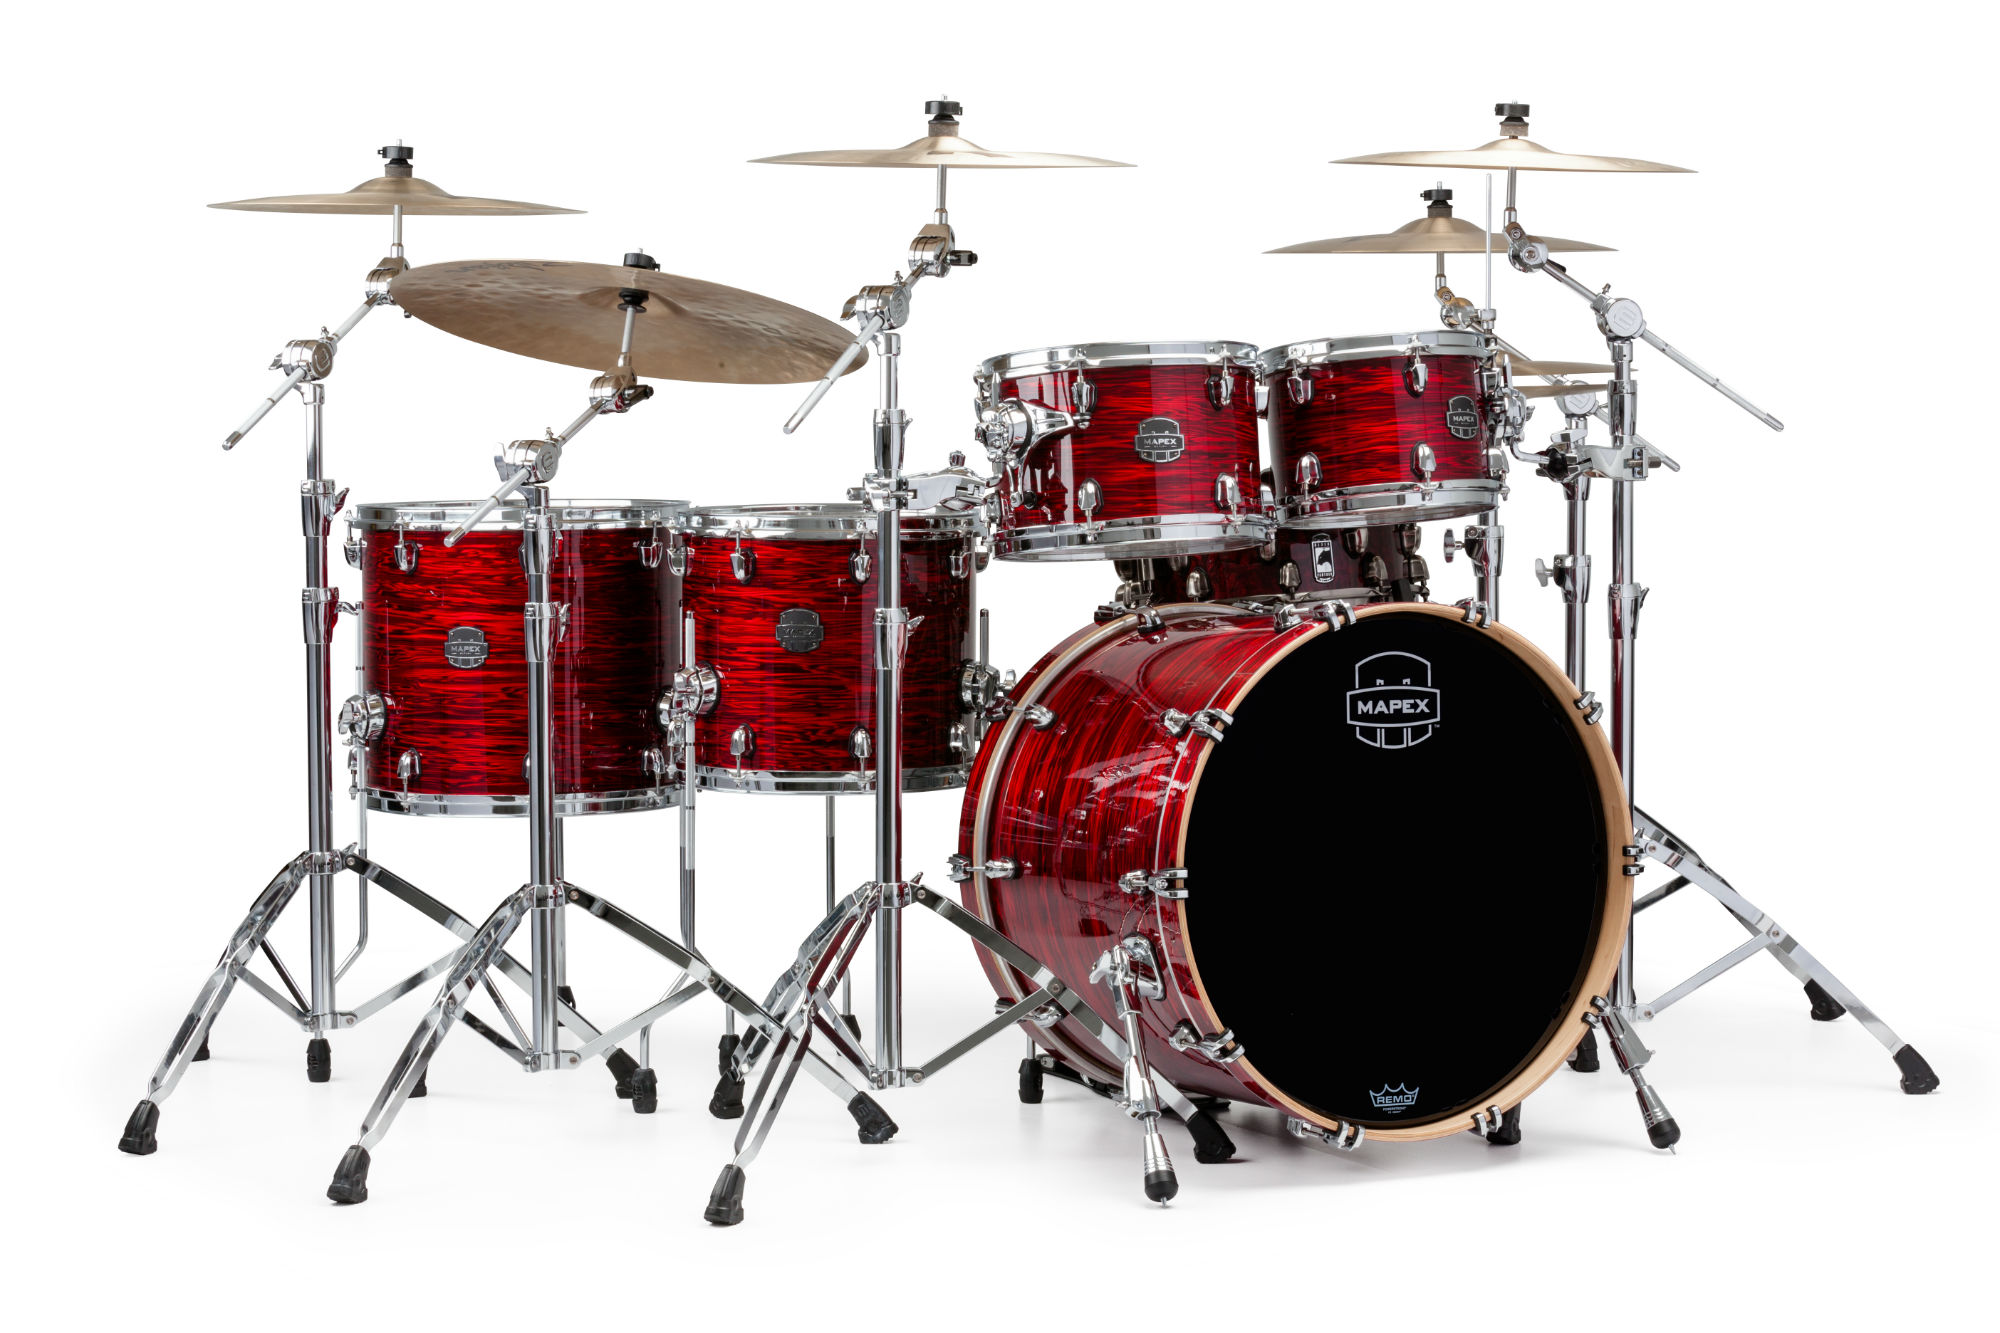 Mapex Saturn V MH Studioease 5-piece shell pack with SONIClear Edge - SV628XUPC - Red Strata Pearl